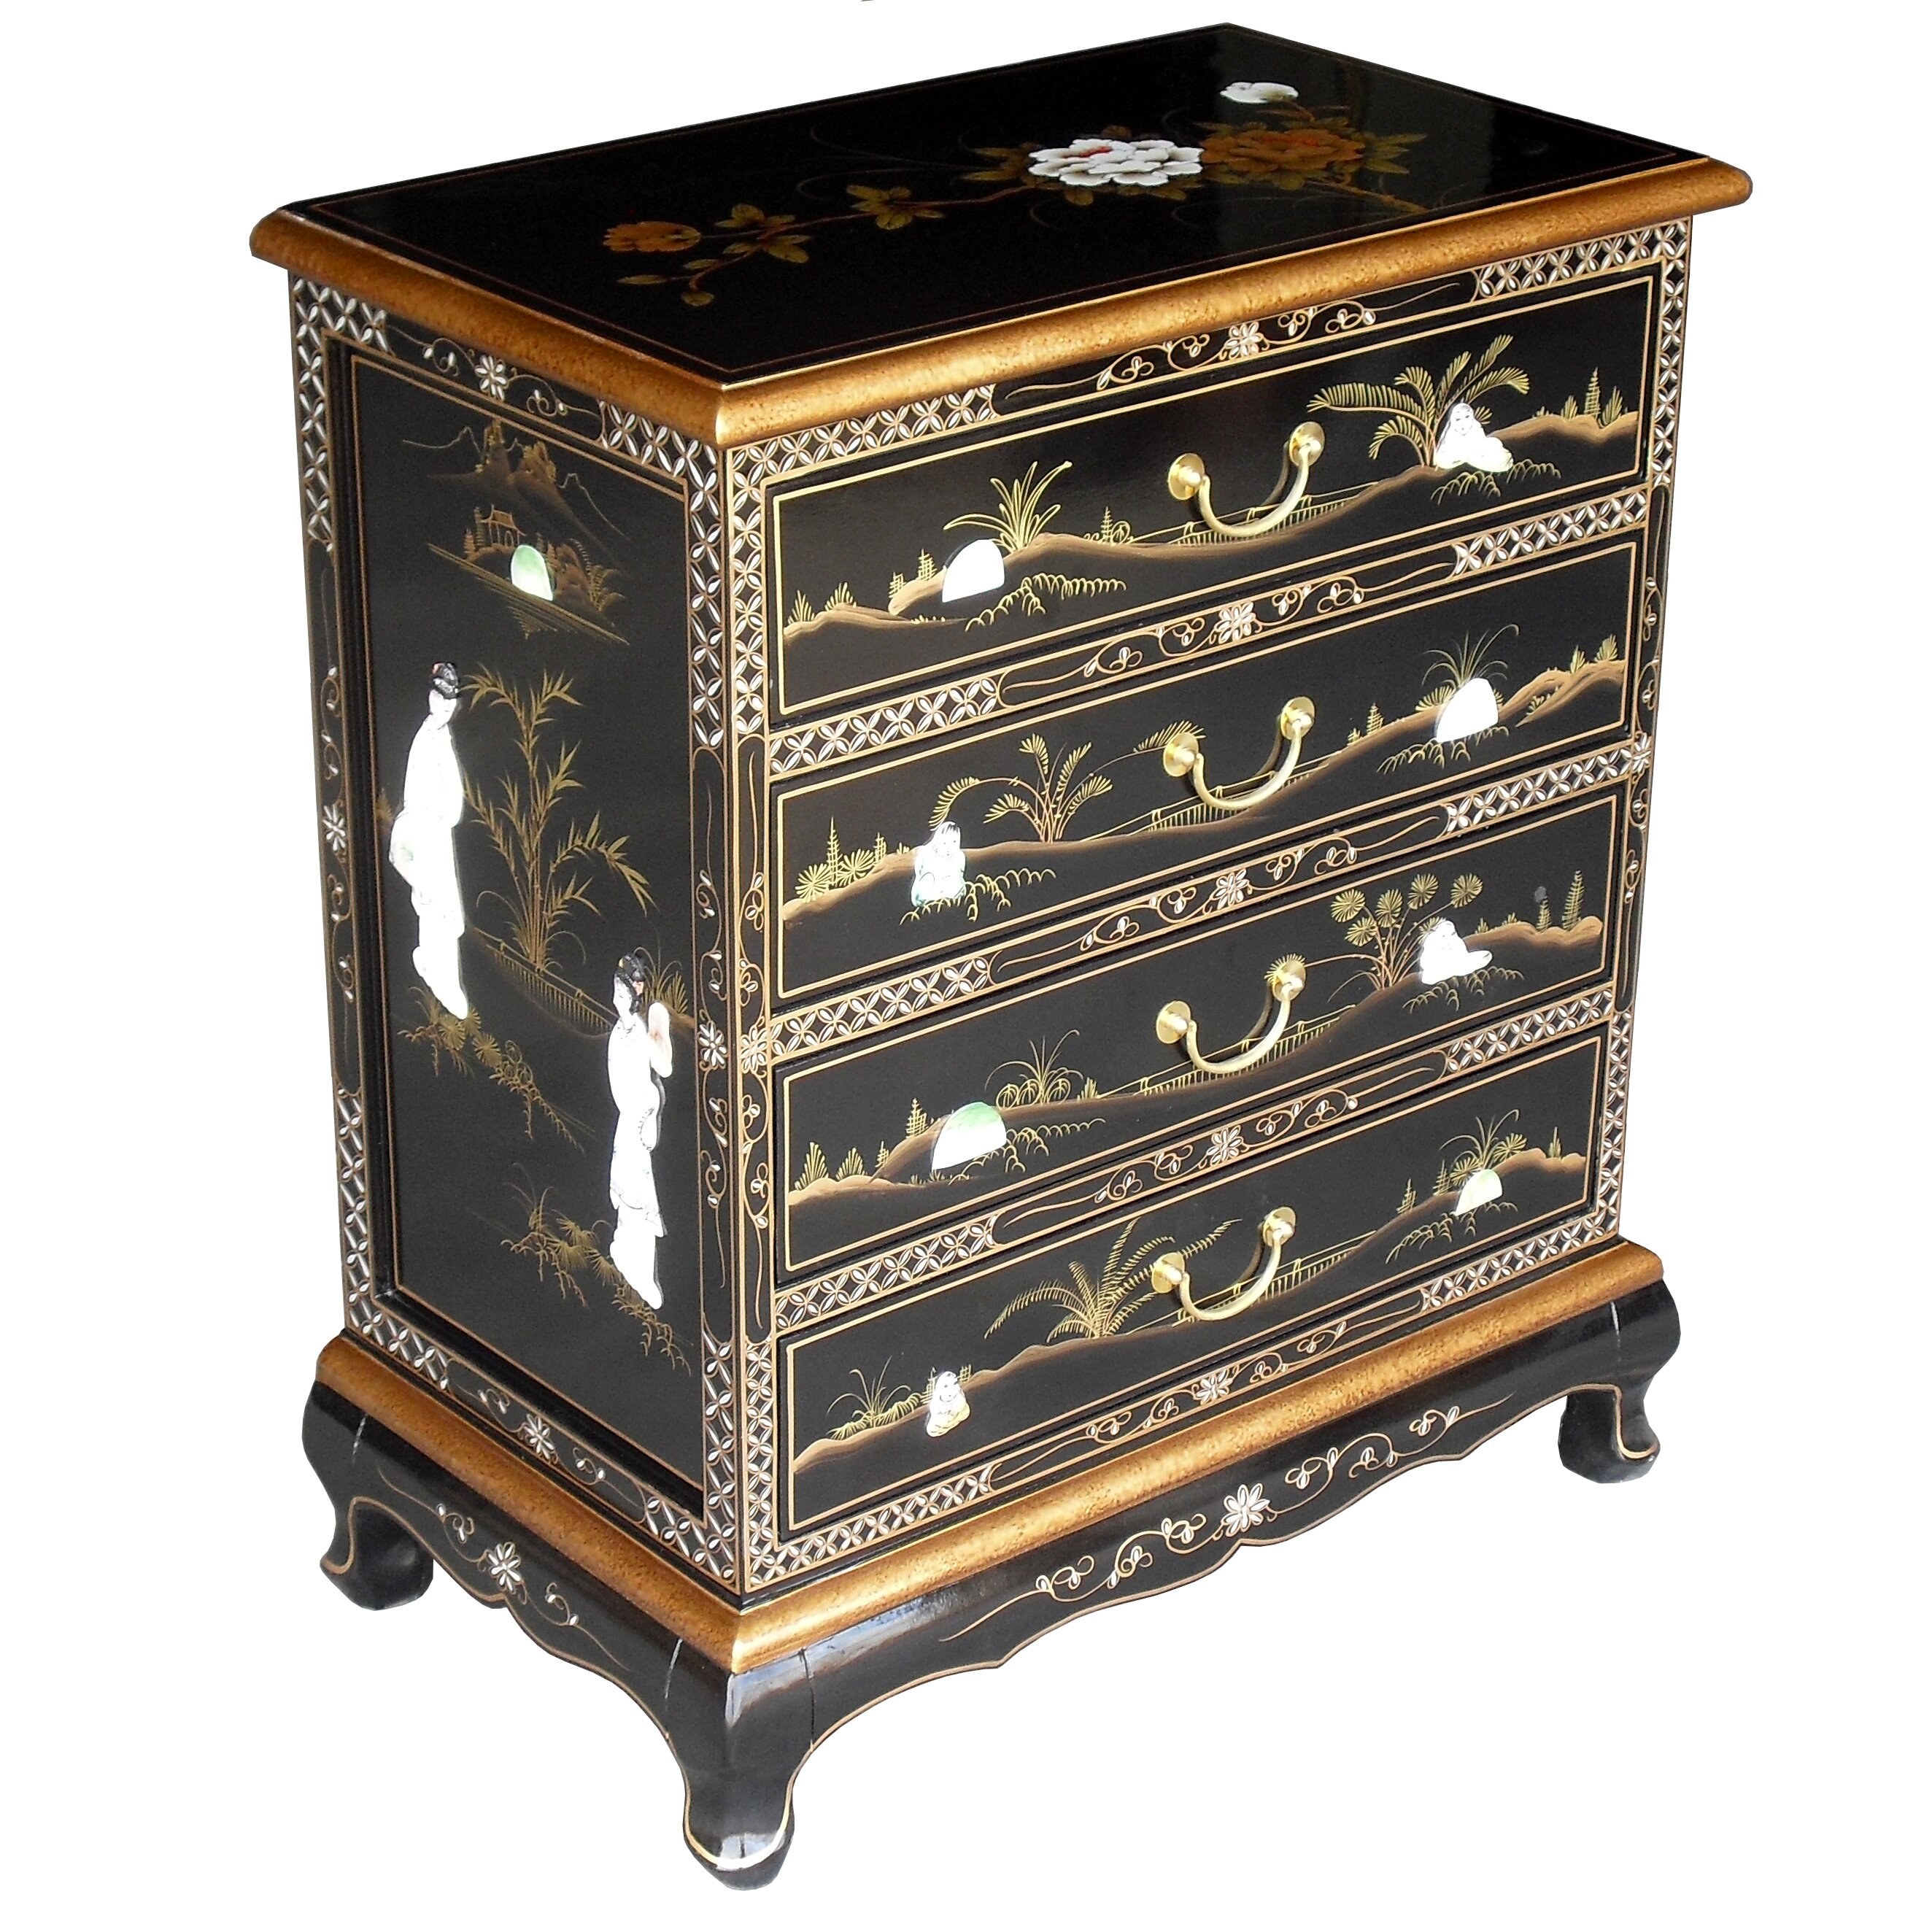 Grand international decor mother of pearl 4 drawer chest for Grand international decor